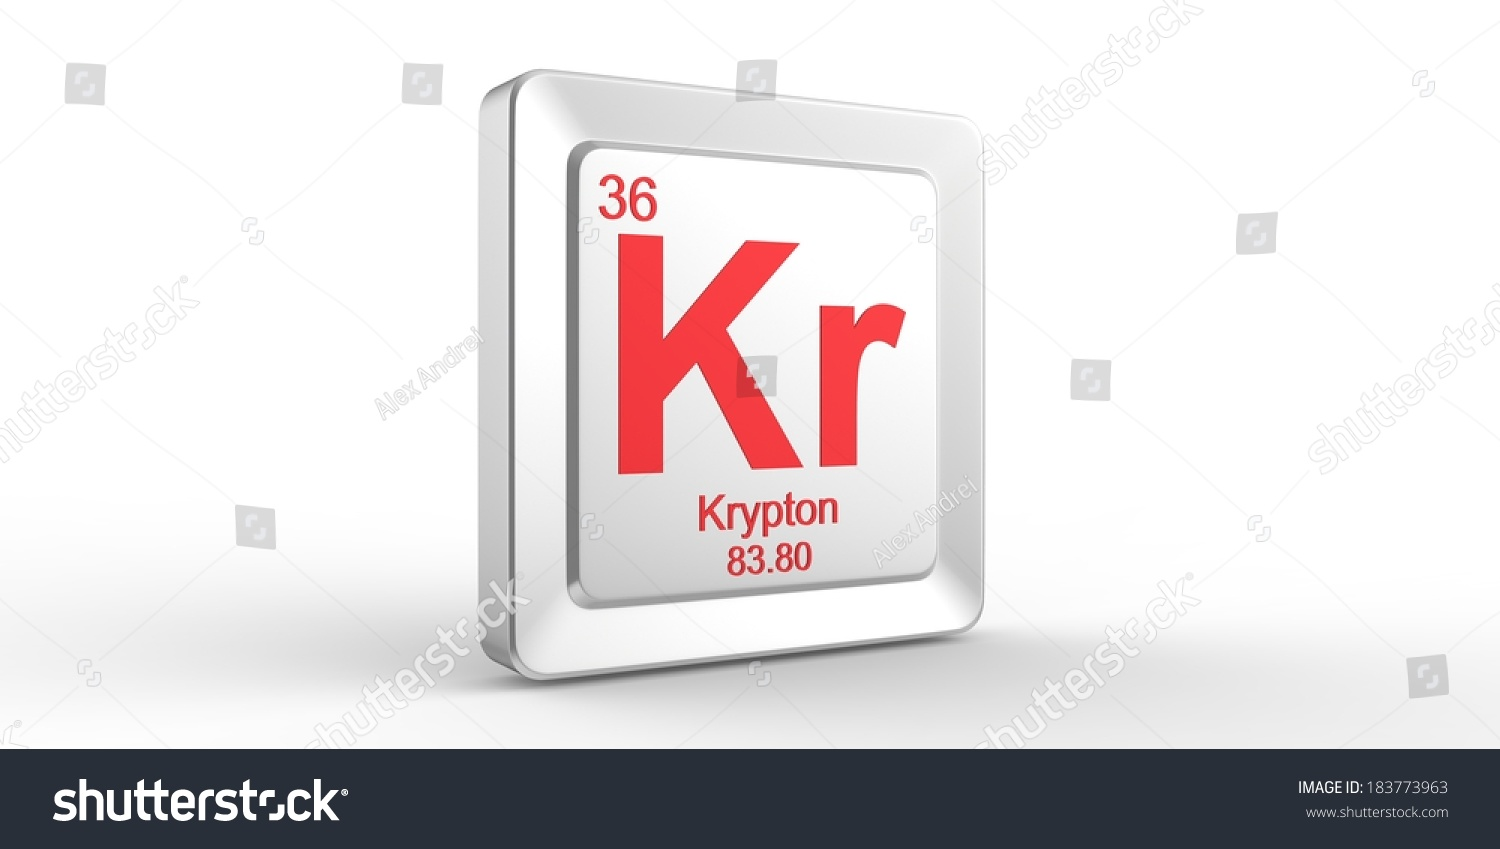 Kr symbol 36 material krypton chemical stock illustration kr symbol 36 material for krypton chemical element of the periodic table buycottarizona